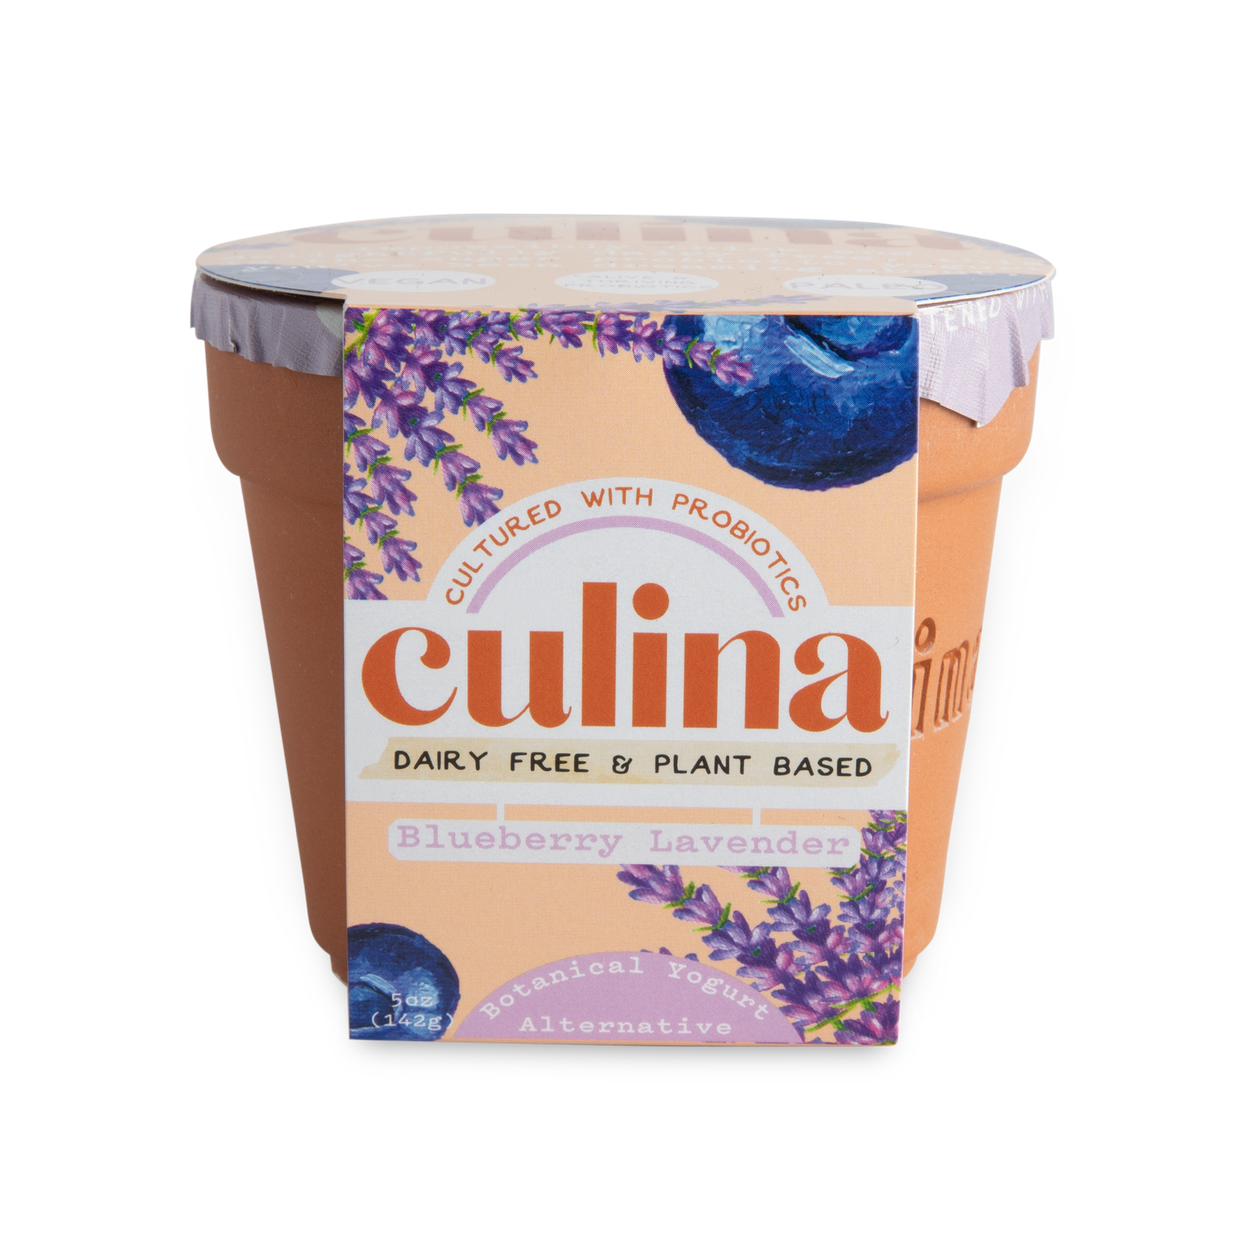 culina blueberry lavender